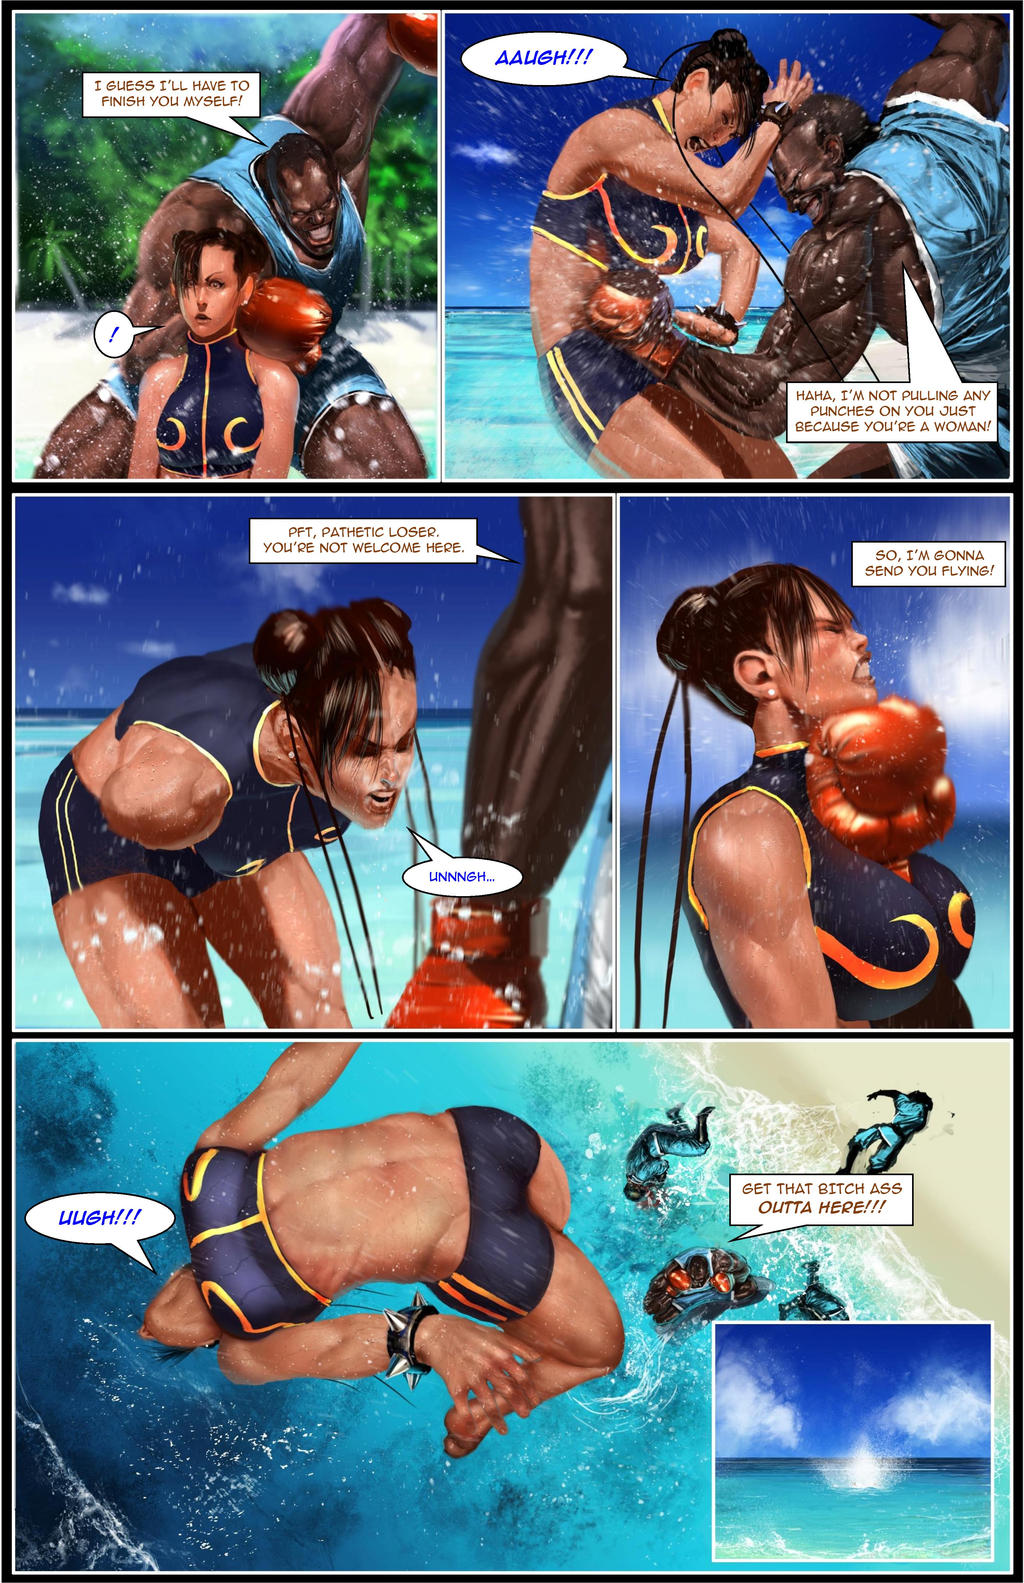 chun_li__the_gauntlet_page_17_by_tree_ink-dblm48k.jpg